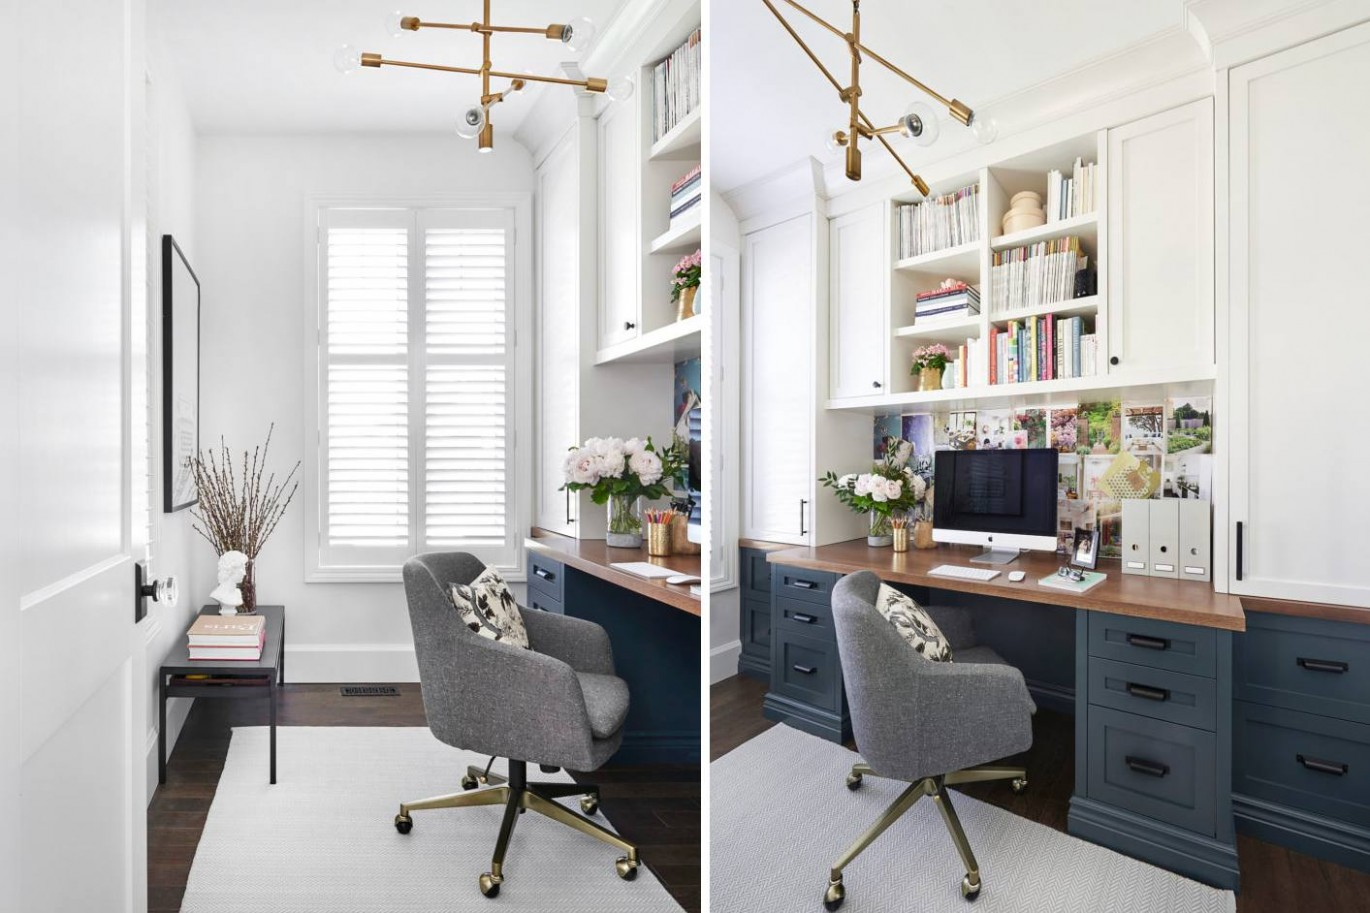 Small Home Office Ideas That Are Surprisingly Stylish - Narrow Home Office Ideas